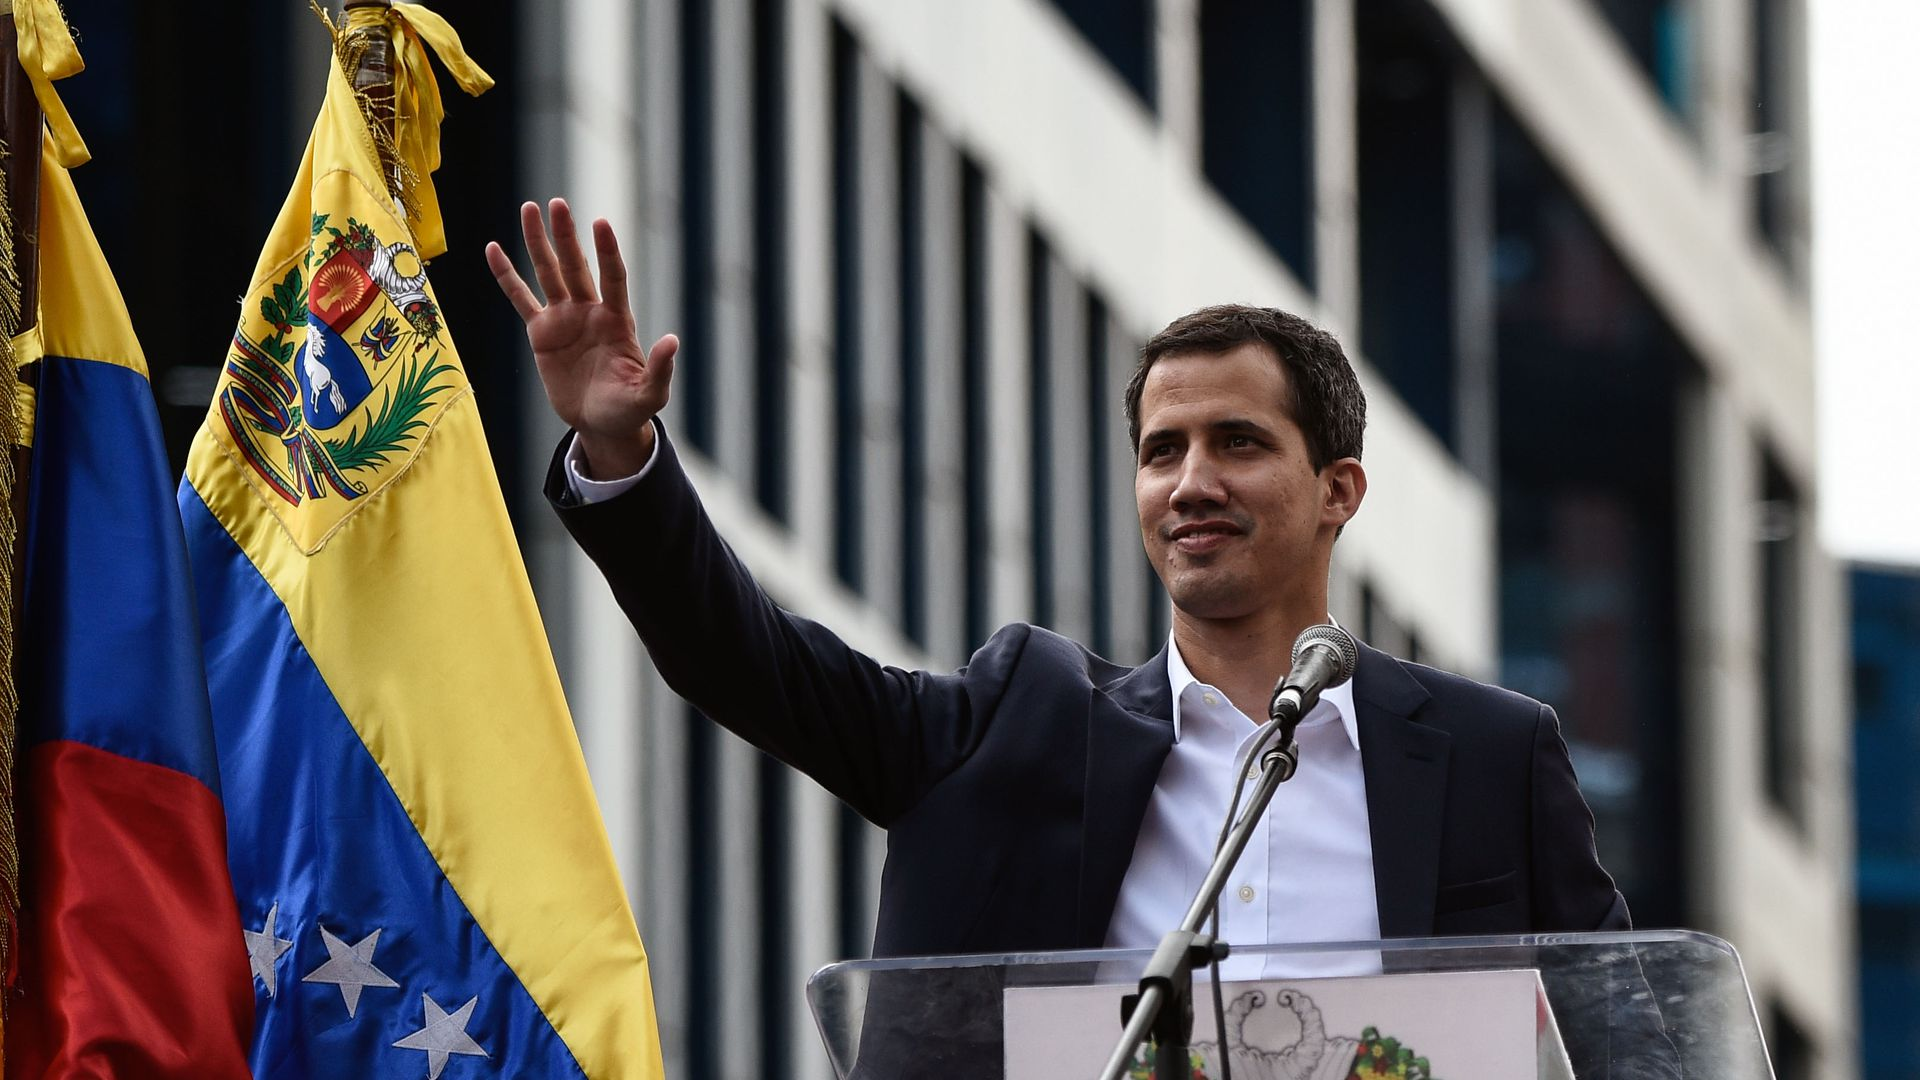 EU Parliament Recognizes Juan Guaido As Venezuela's Interim President